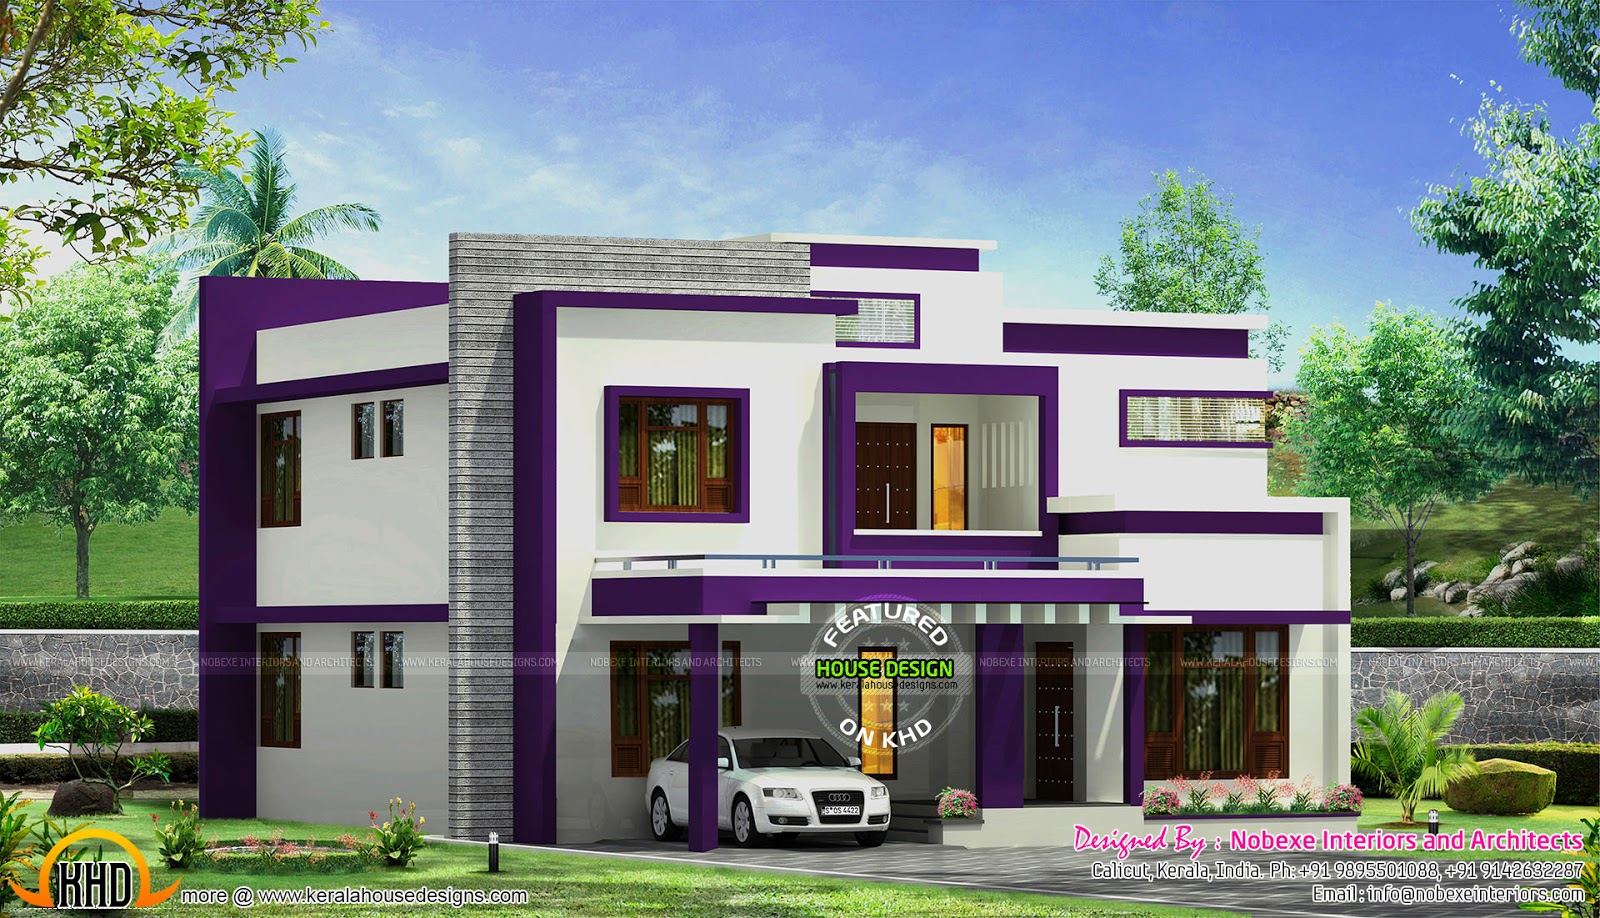 Contemporary home design by nobexe interiors kerala home for Small indian house plans modern